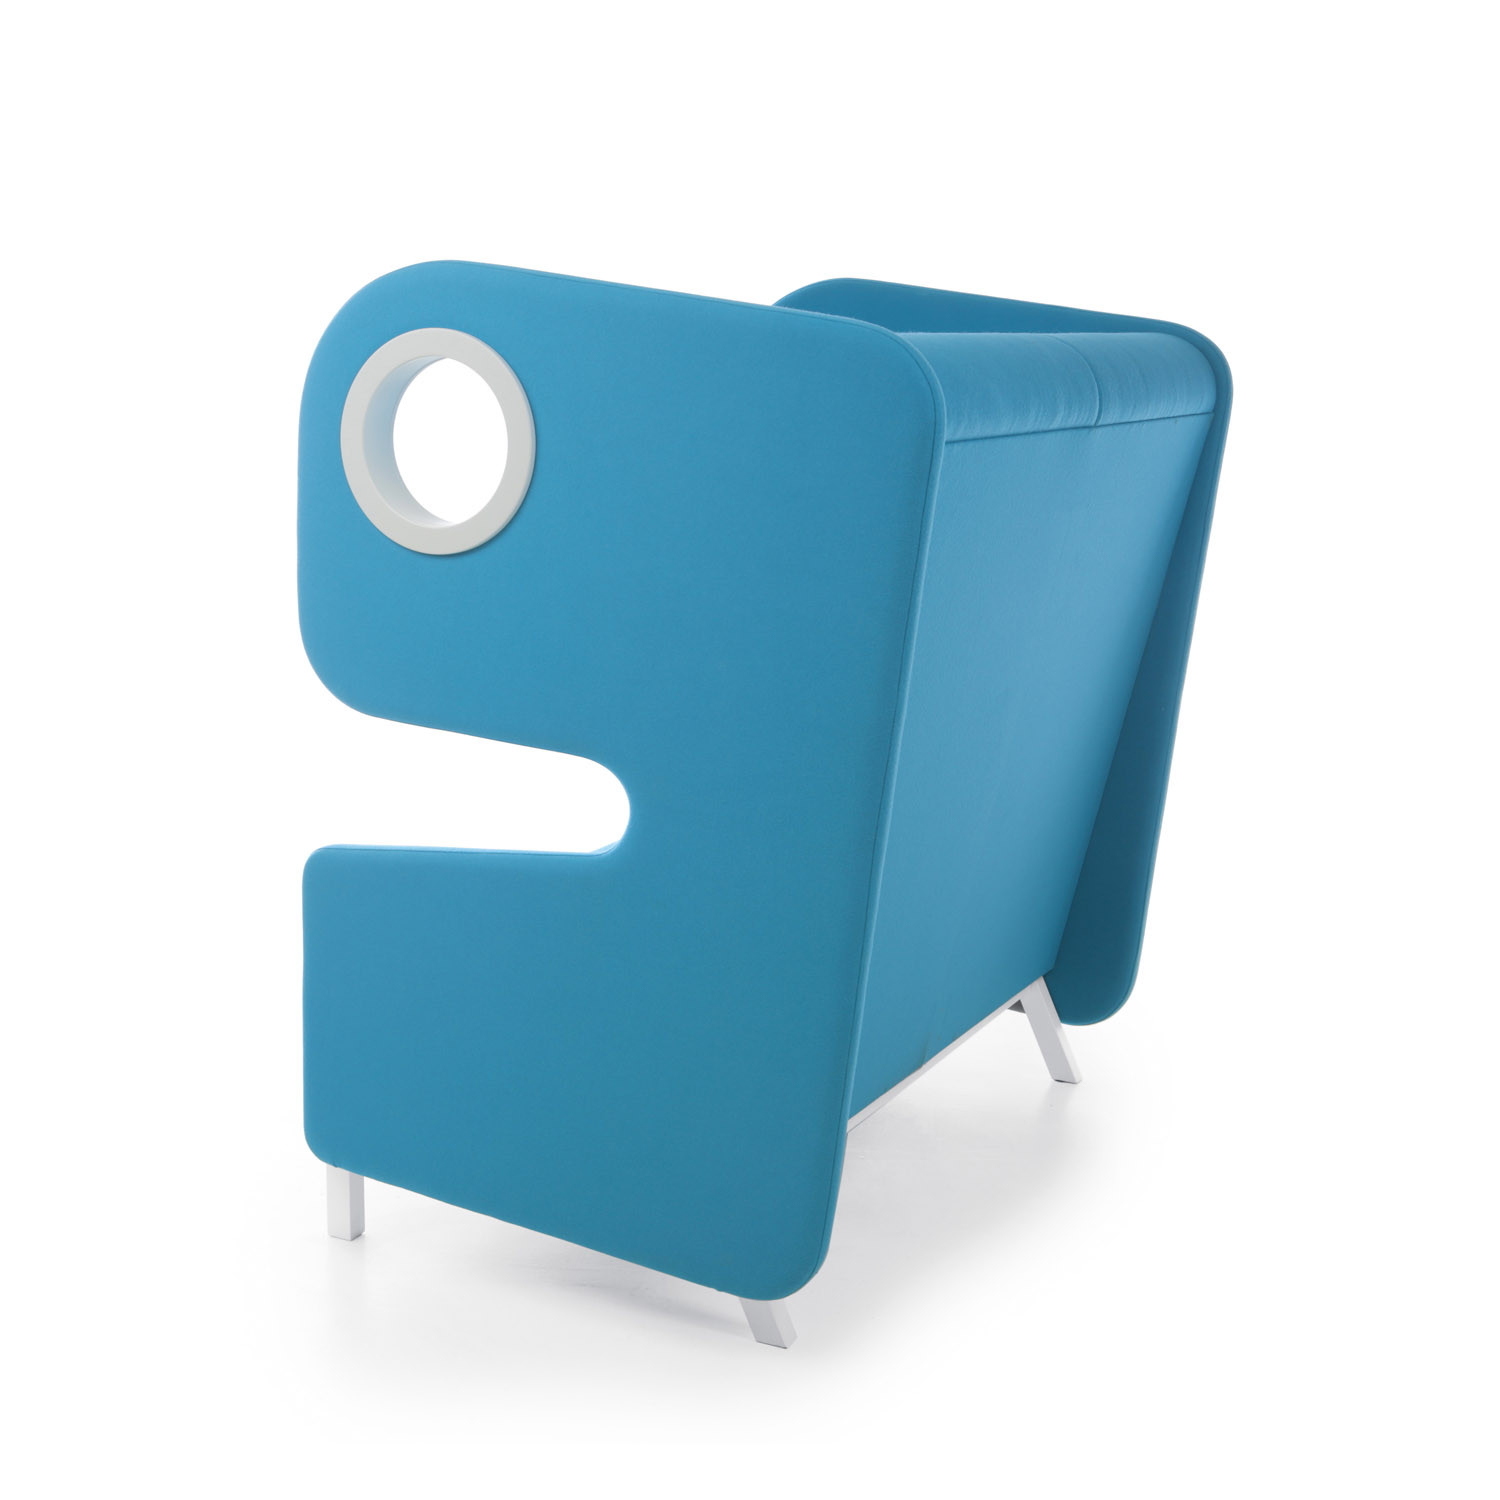 Packman High Back Seating System